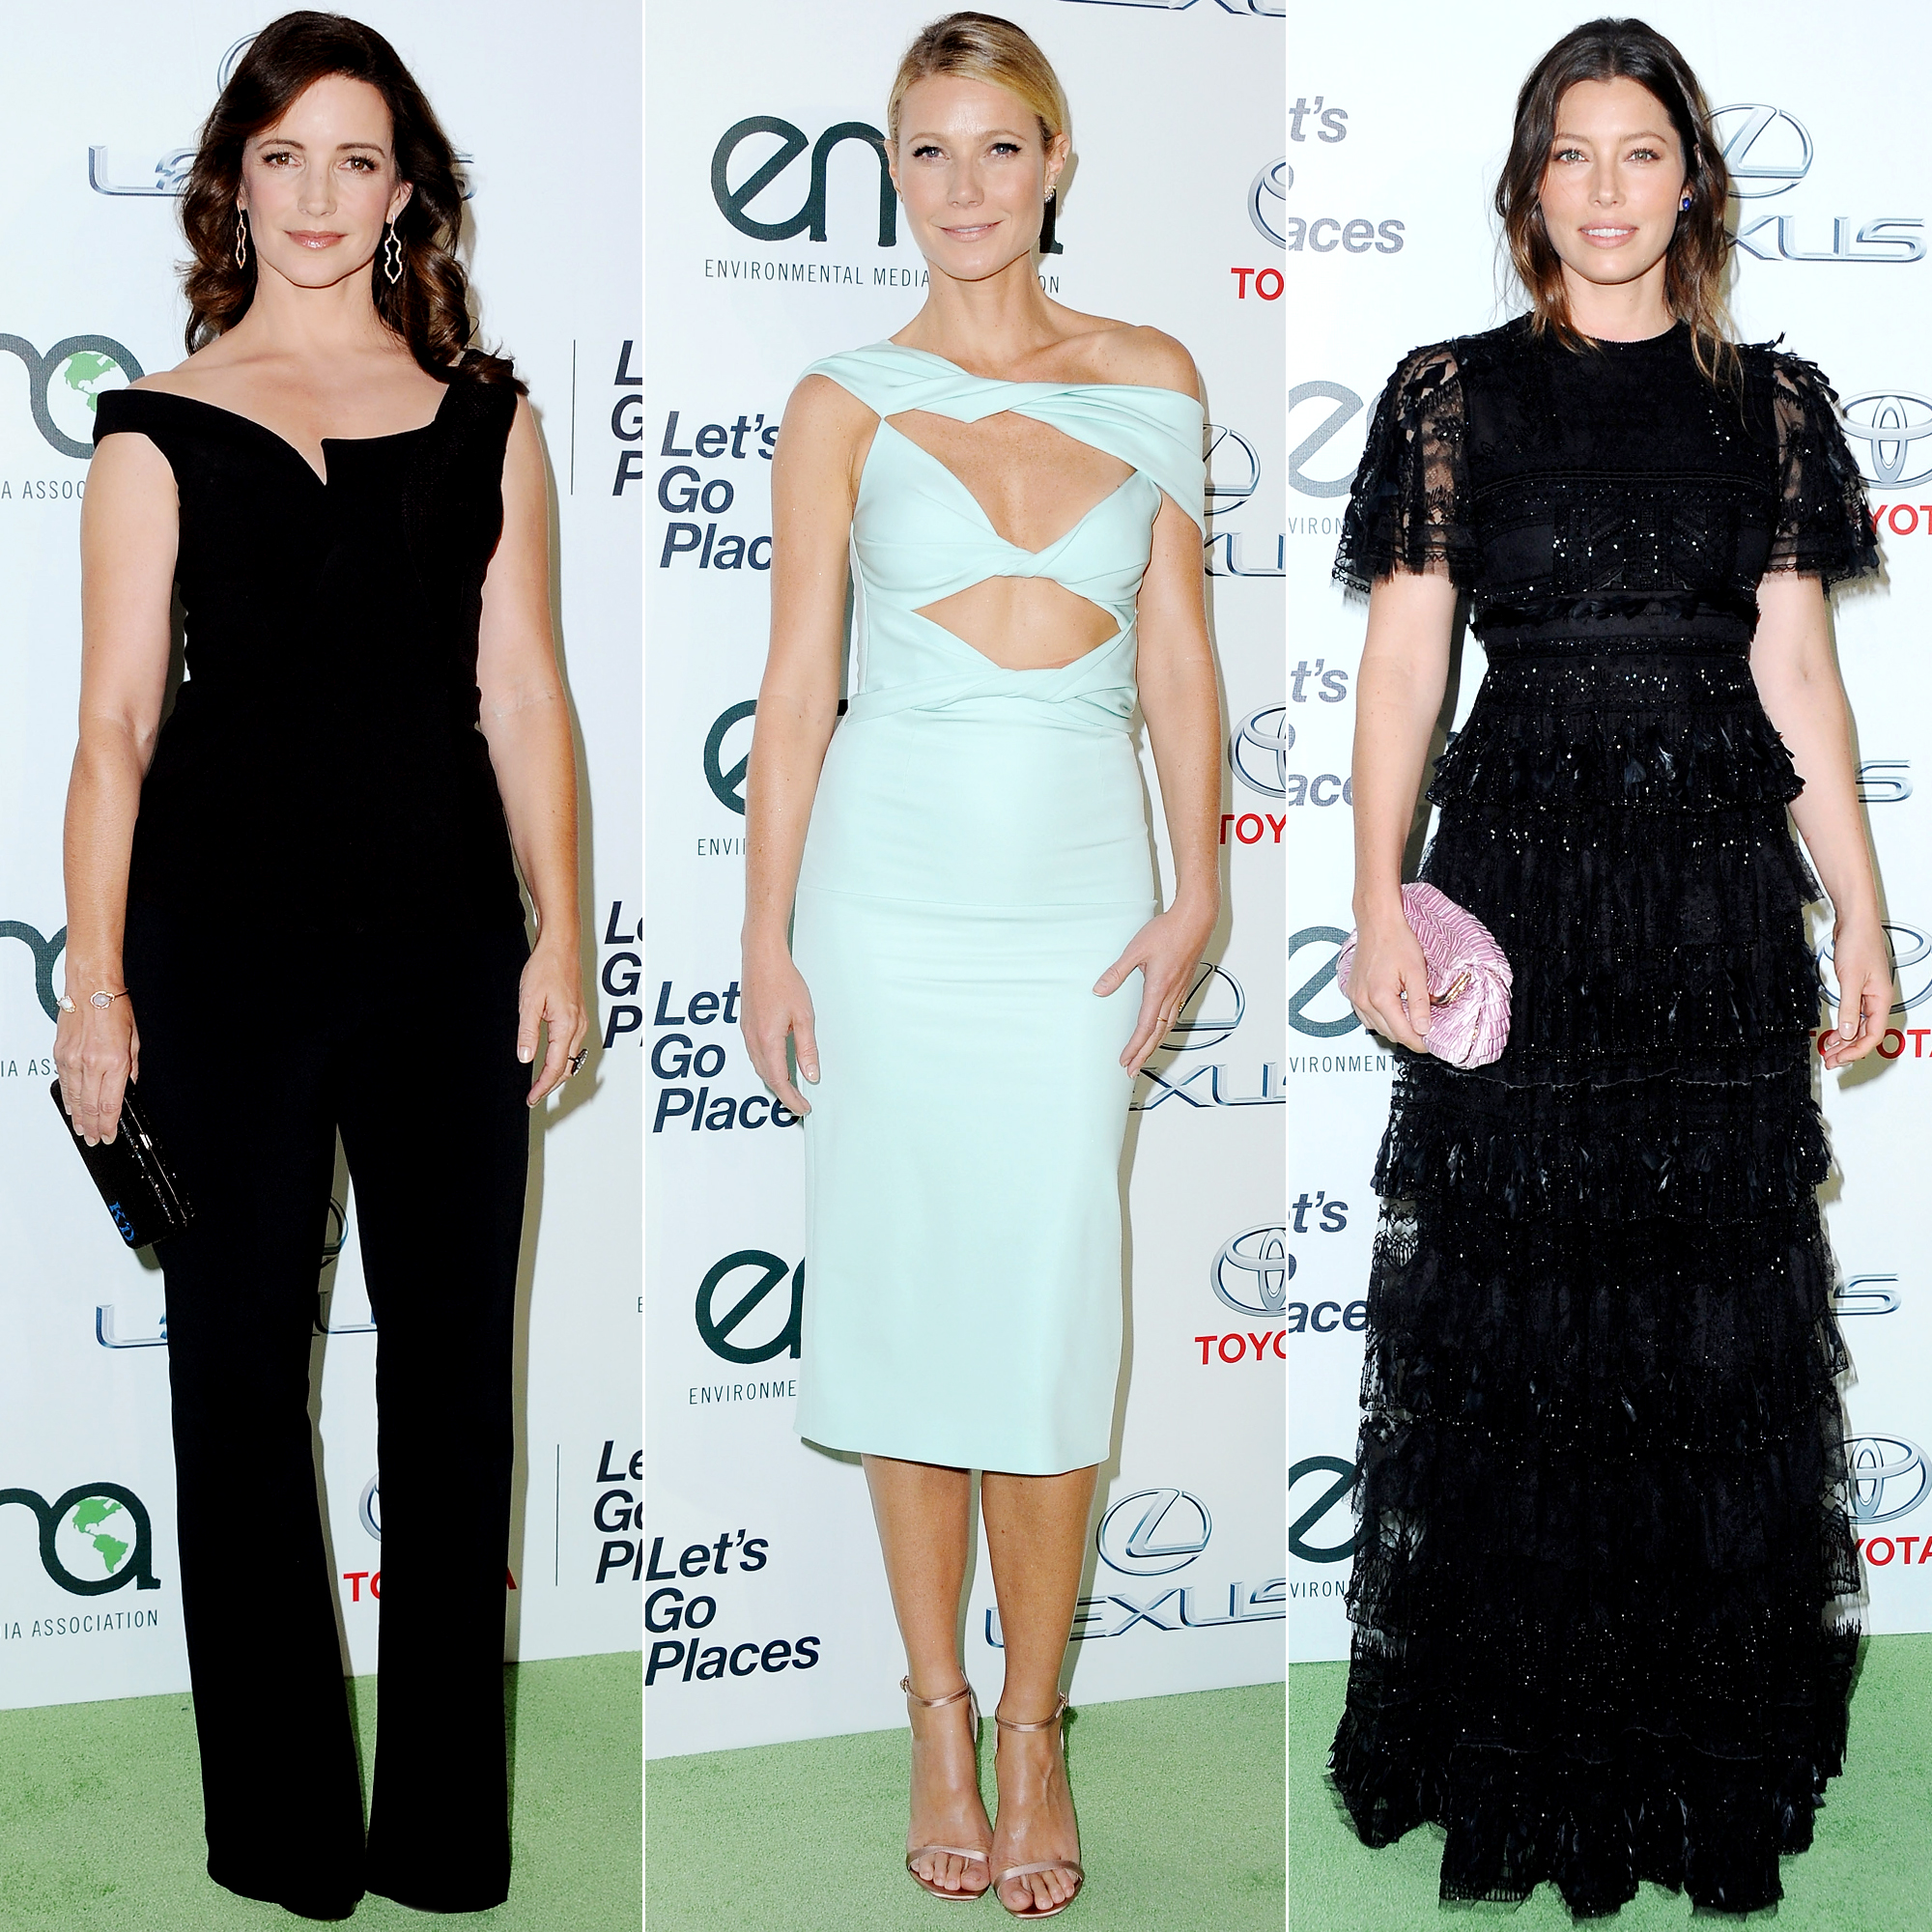 Kristin Davis, Gwyneth Paltrow, and More Stars Step Out to Fight for EnvironmentalProtection